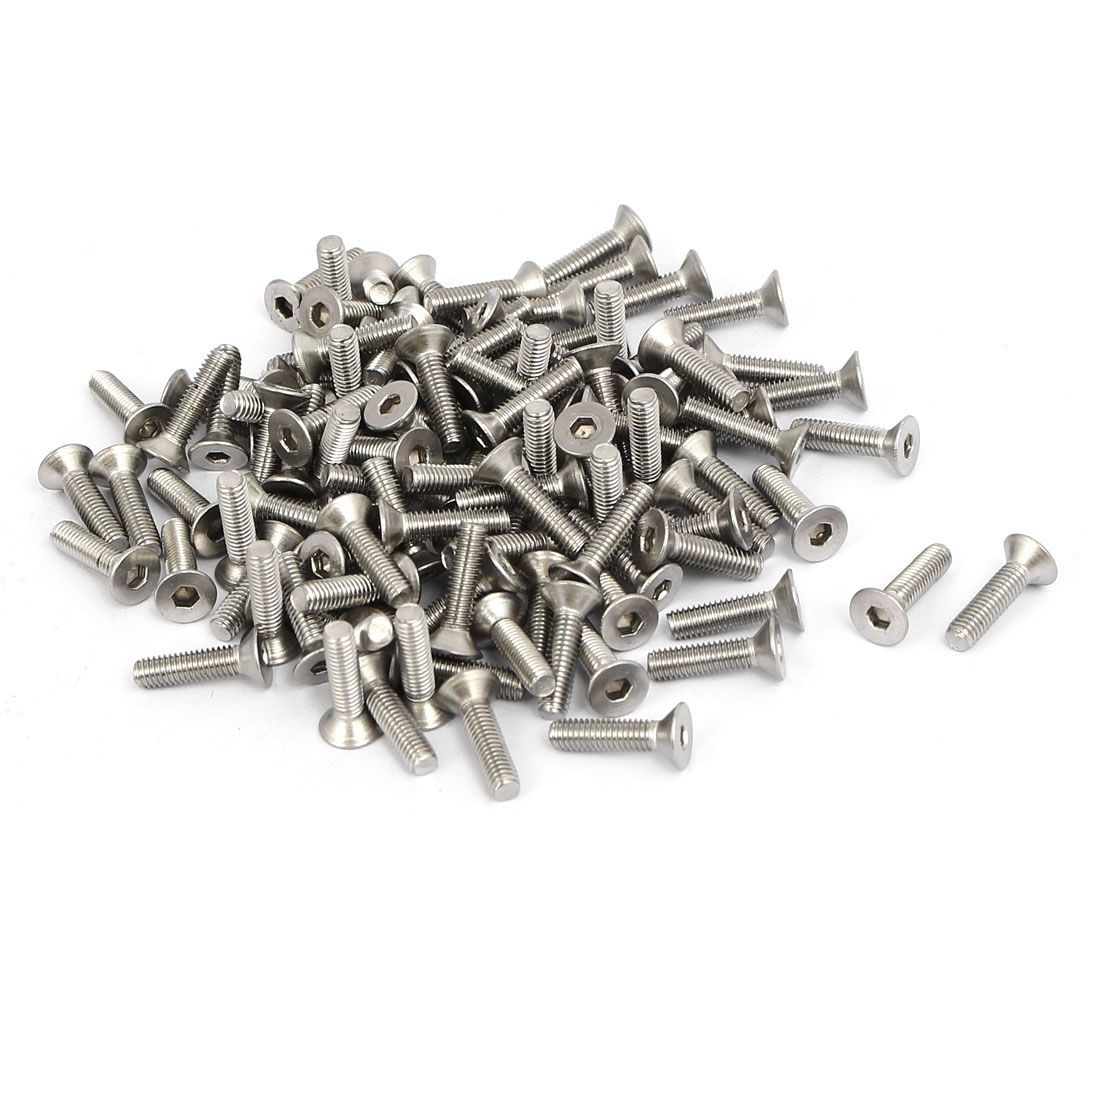 M3x12mm 304 Stainless Steel Flat Head Hex Socket Screws Fasteners DIN7991 120pcs